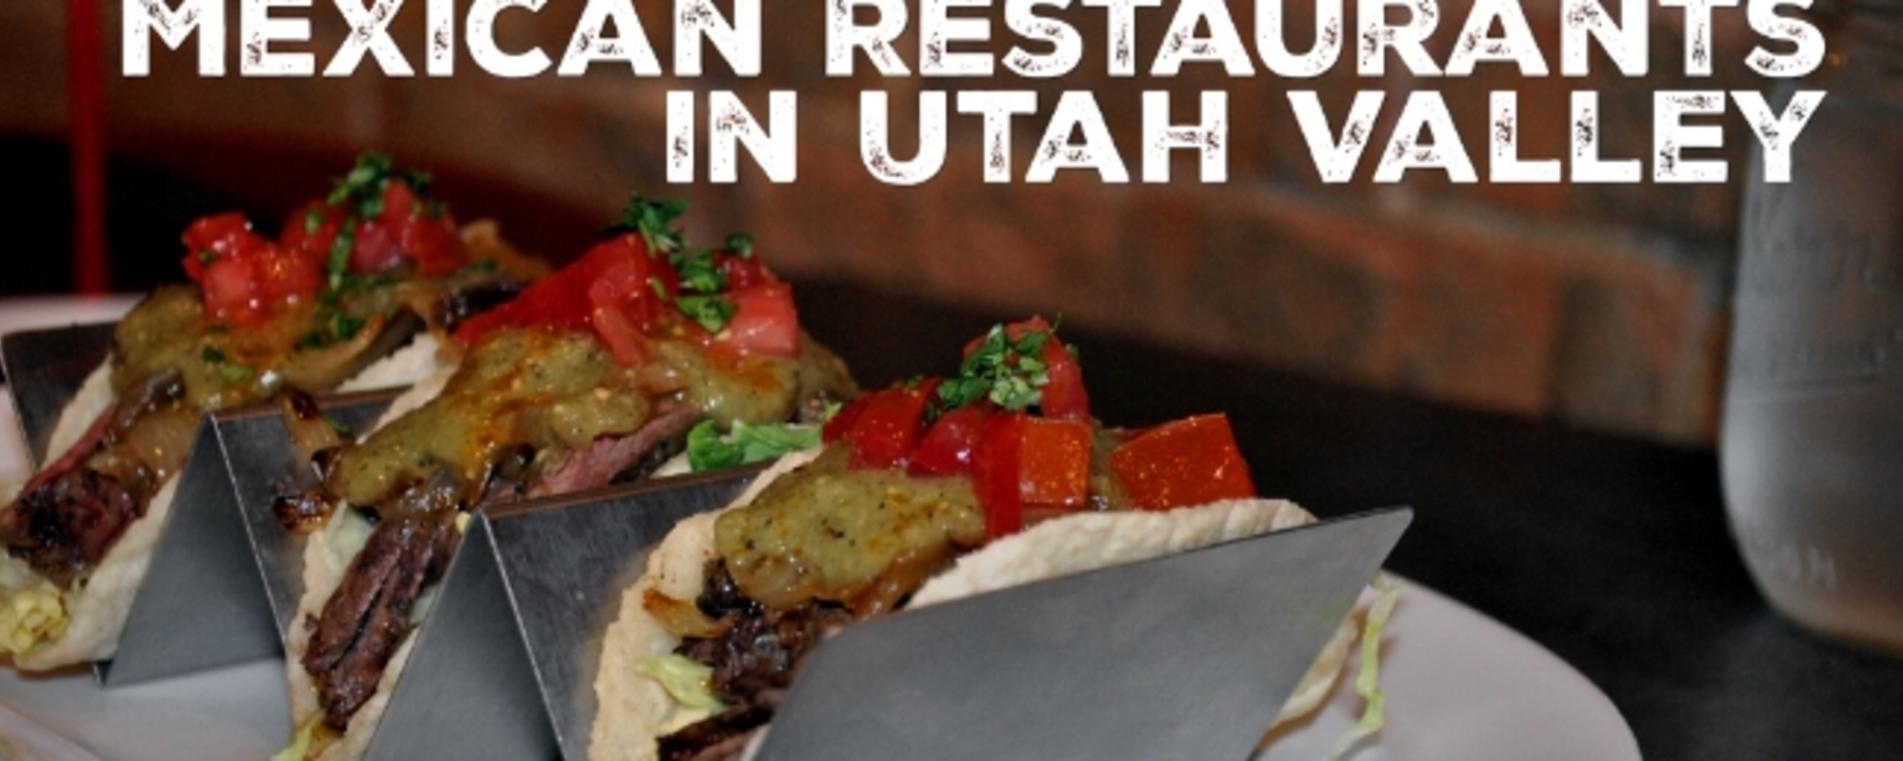 10 Mexican Restaurants In Utah Valley Explore Utah Valley